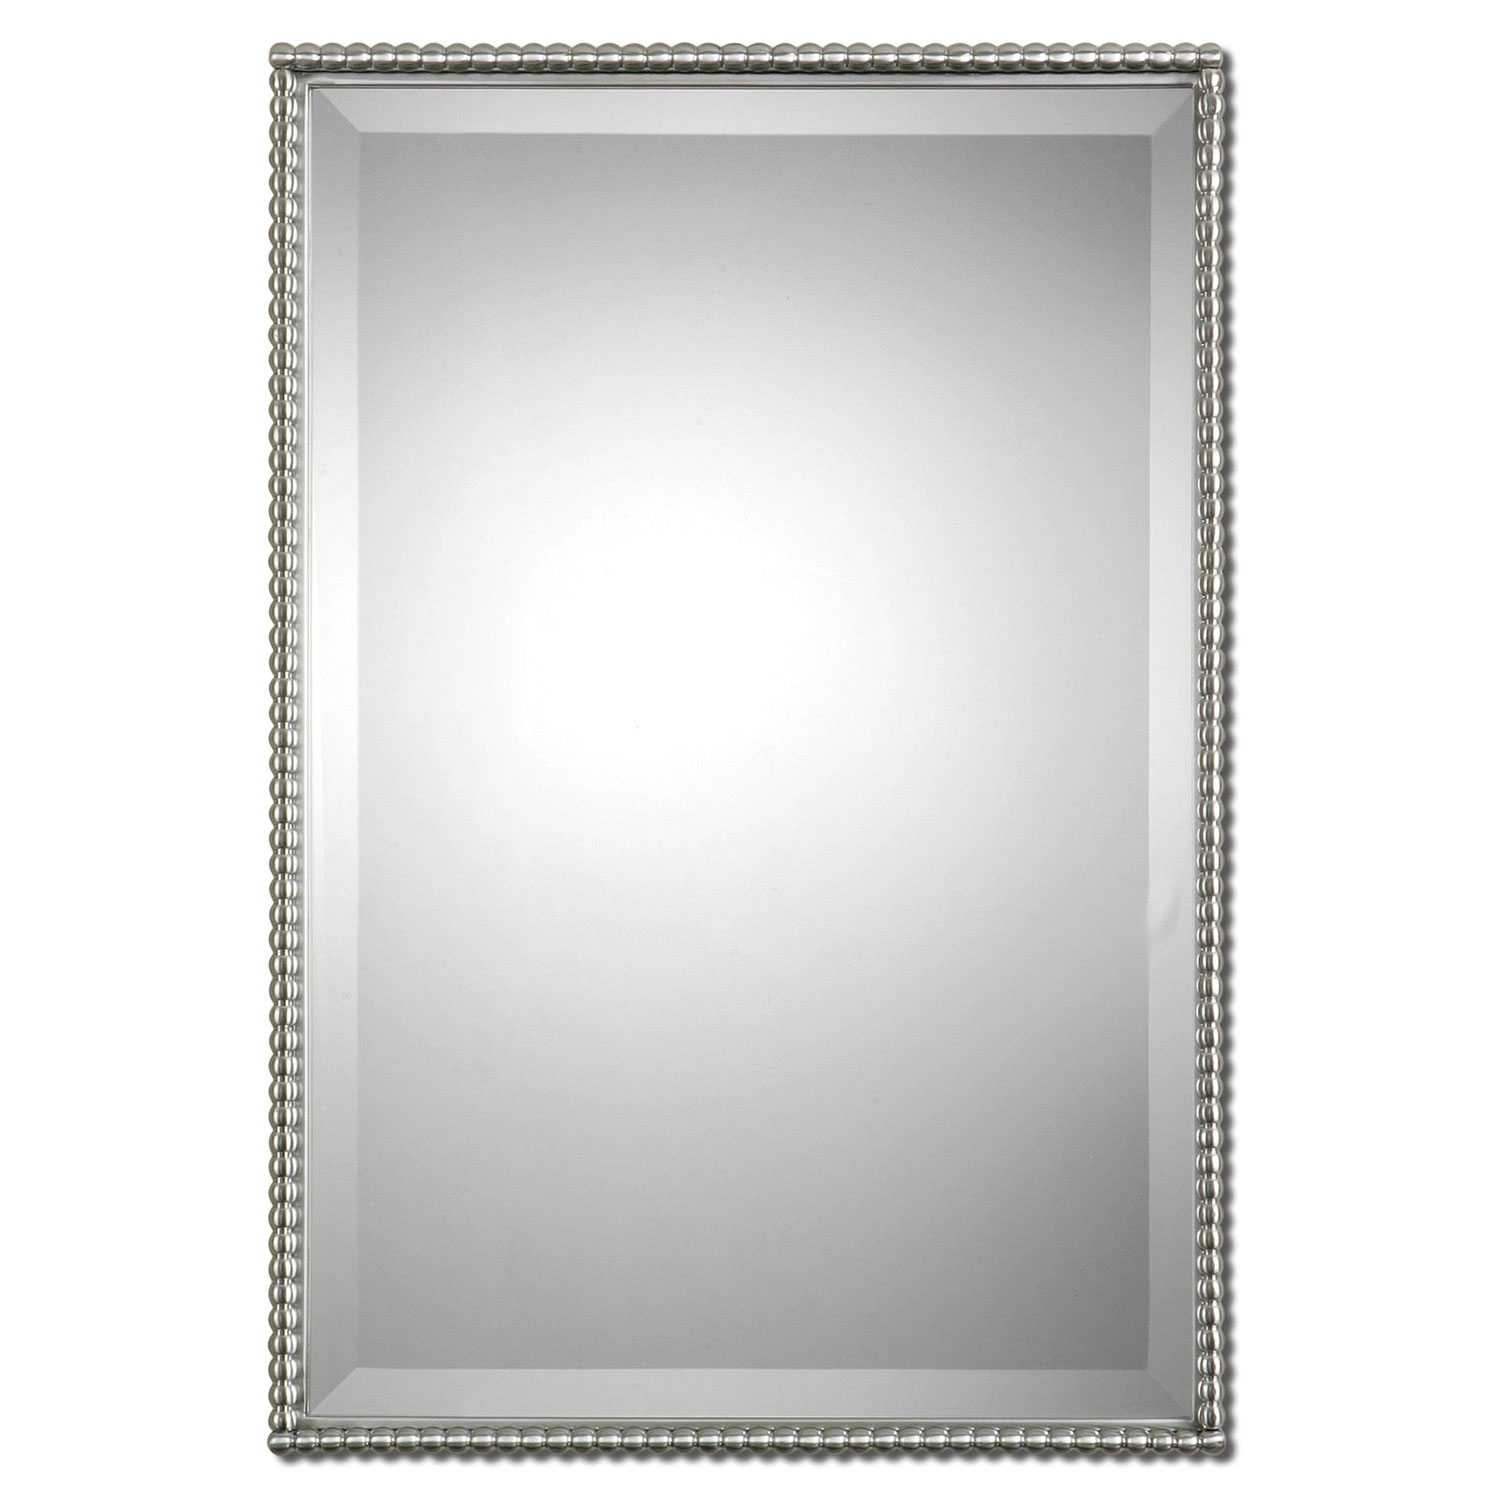 Framed Bathroom Mirrors 36 X 48